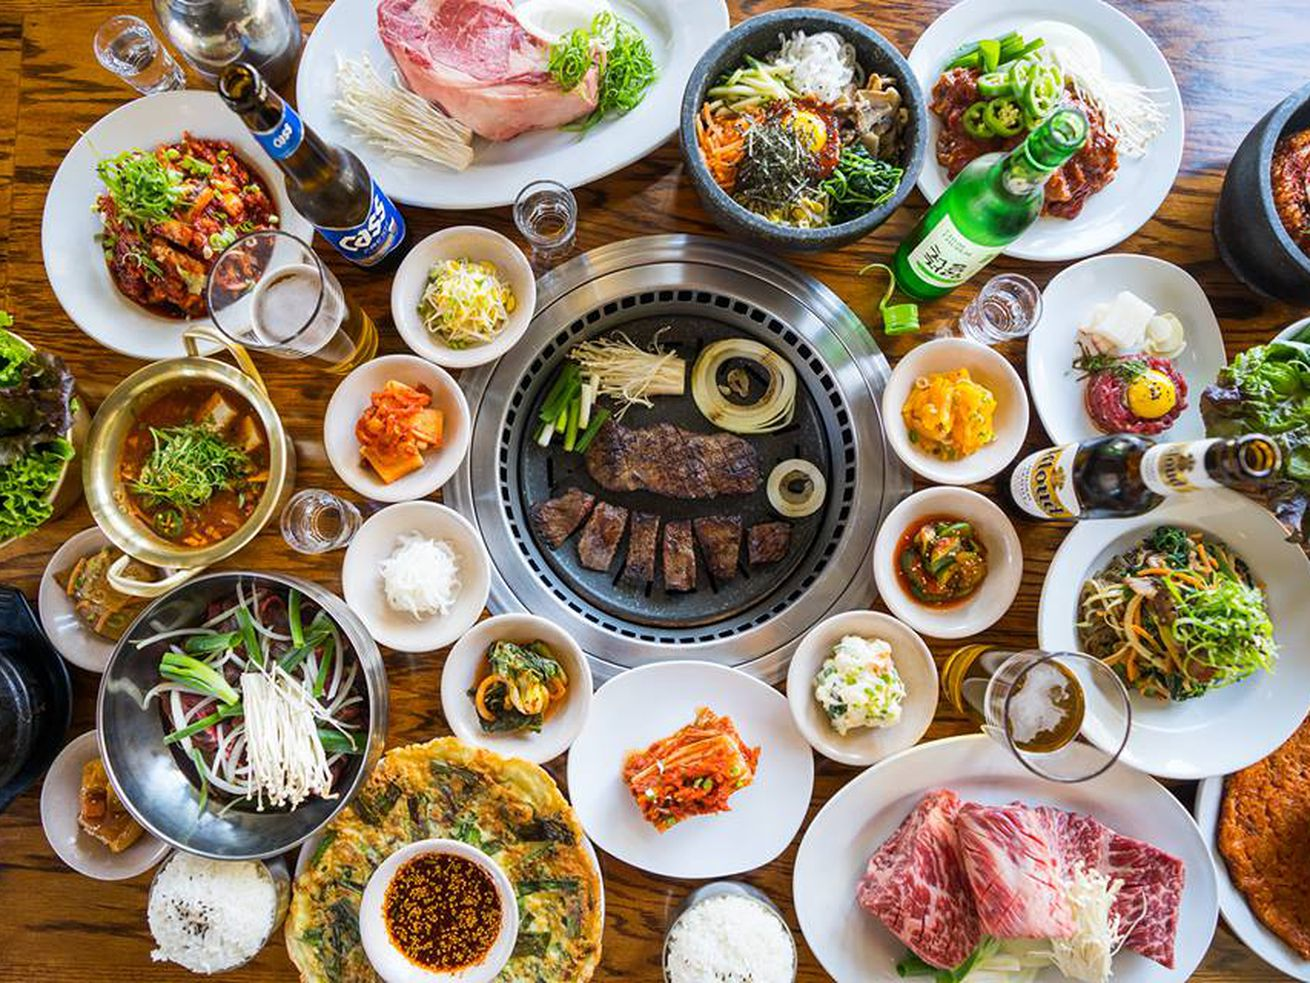 Korean barbecue is an excellent hangover cure.